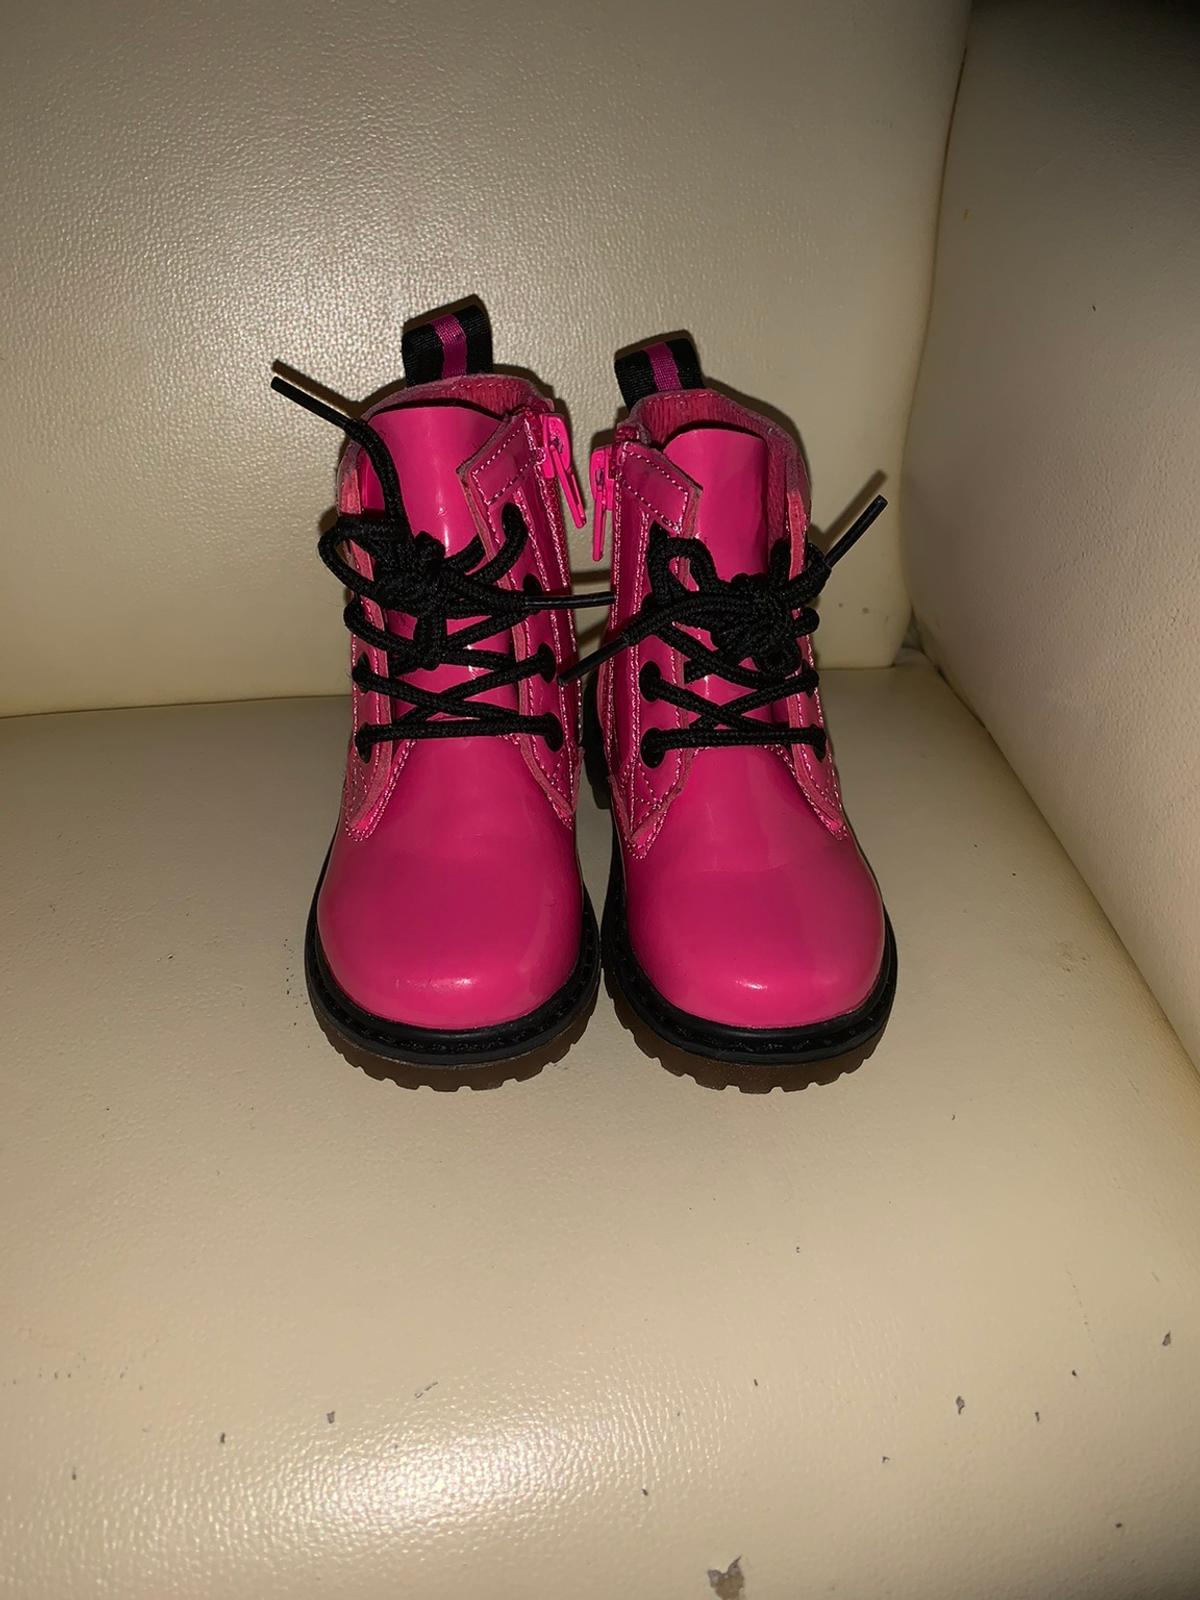 Girls infant size 5 boots has a small scuff on front of one boot but not noticeable unless right up close